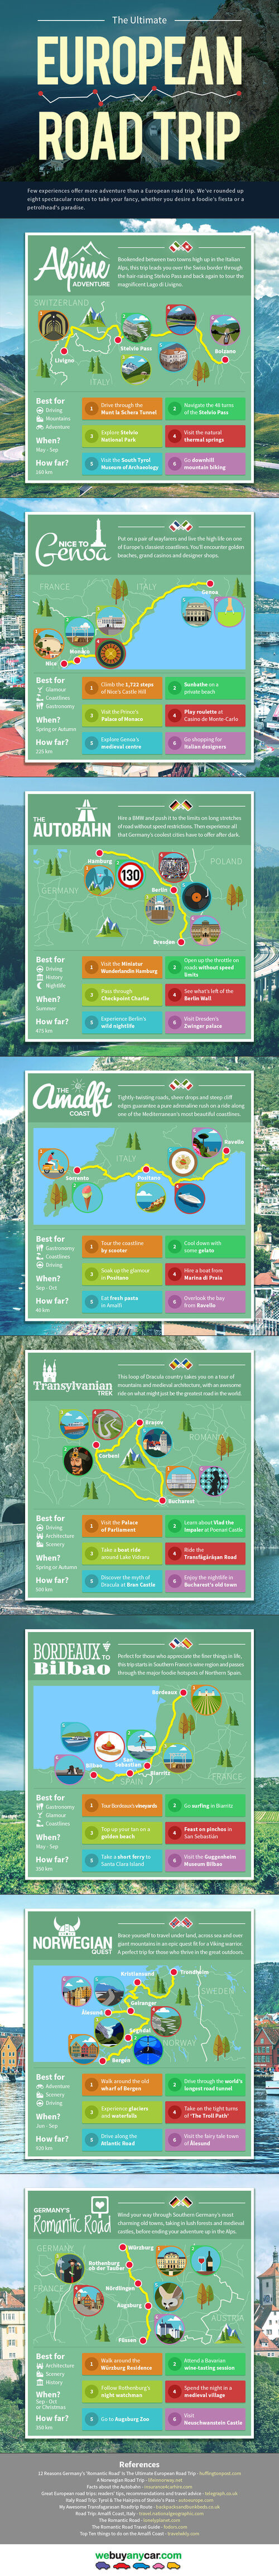 Ultimate European Road Trip Infographic